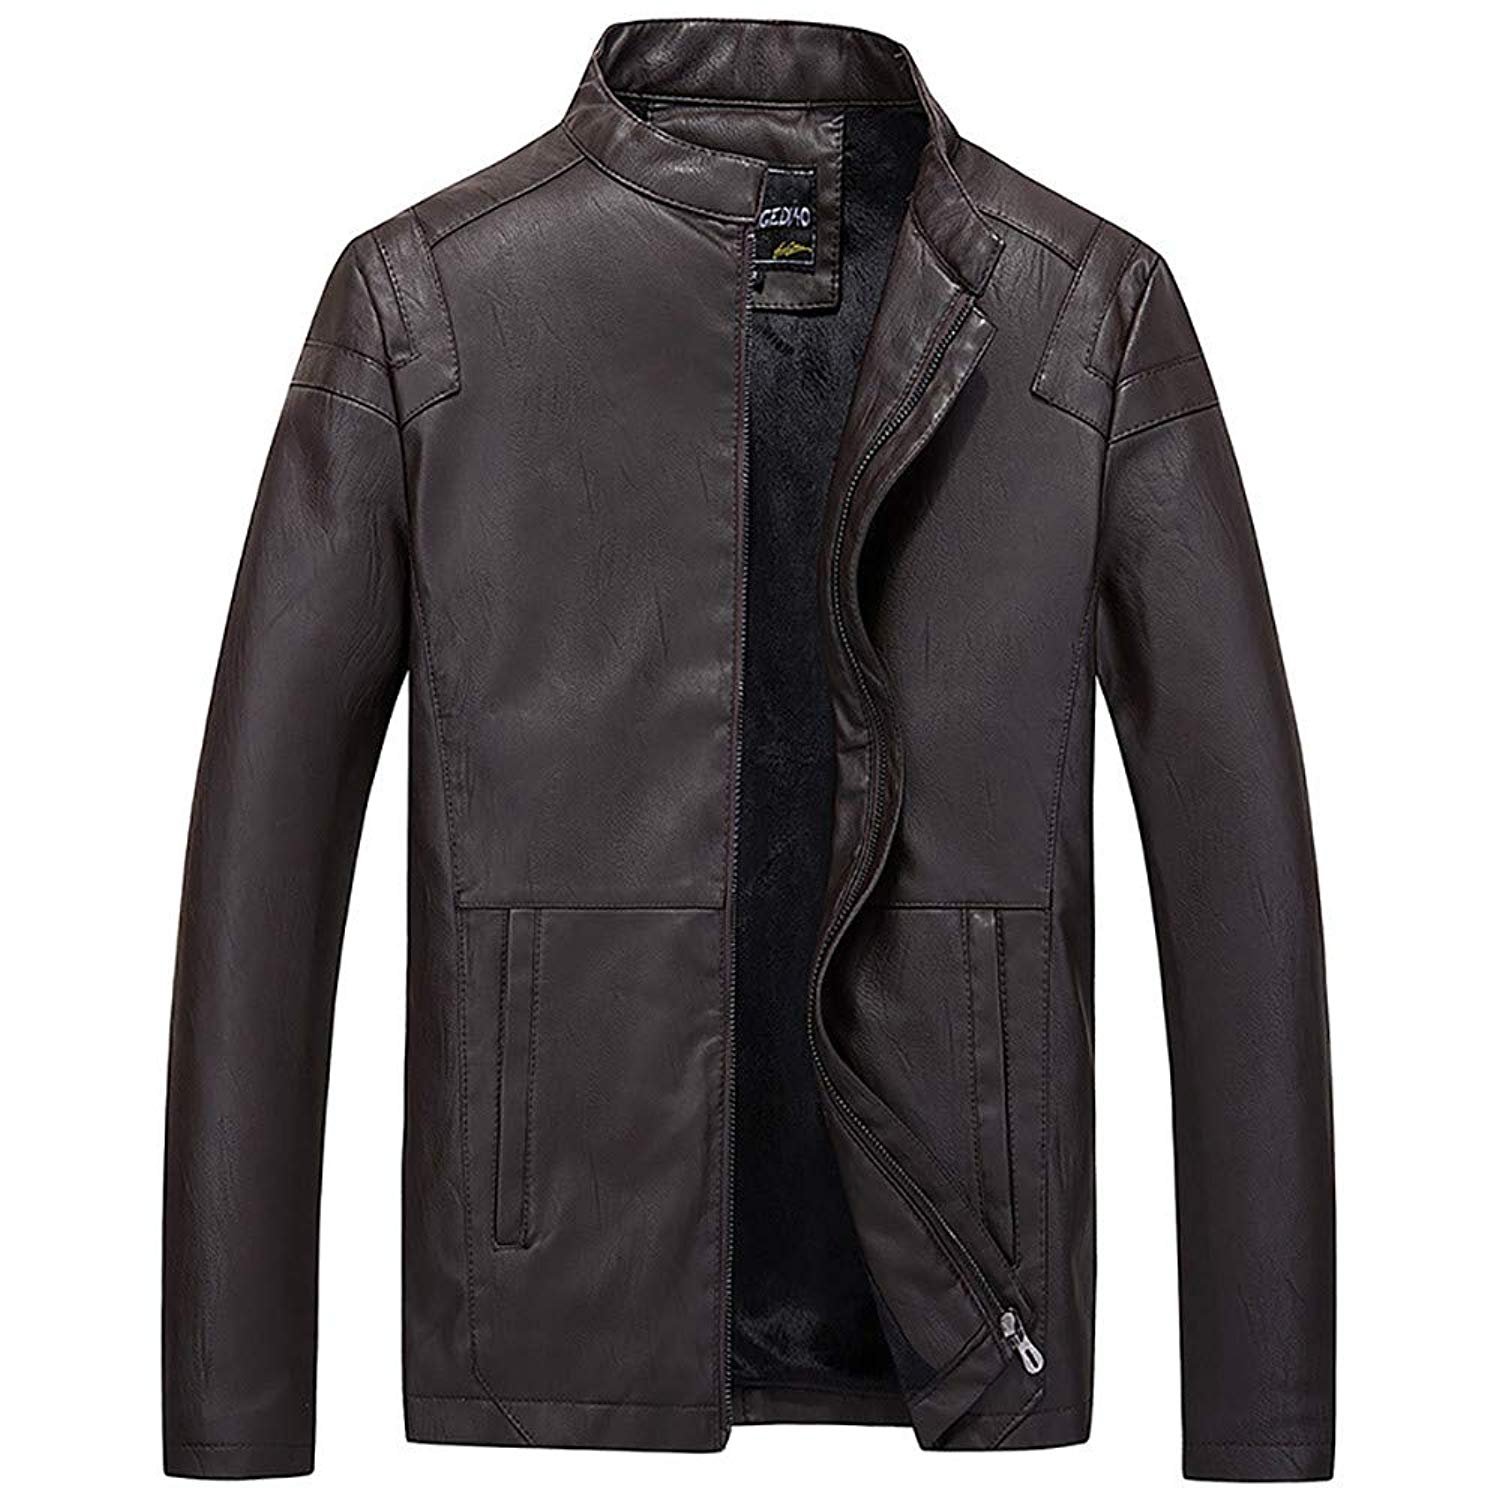 Men's Coat, FORUU Business Casual Cool Cool Motorcycle Leather Jacket Zipper and Fleece Facket